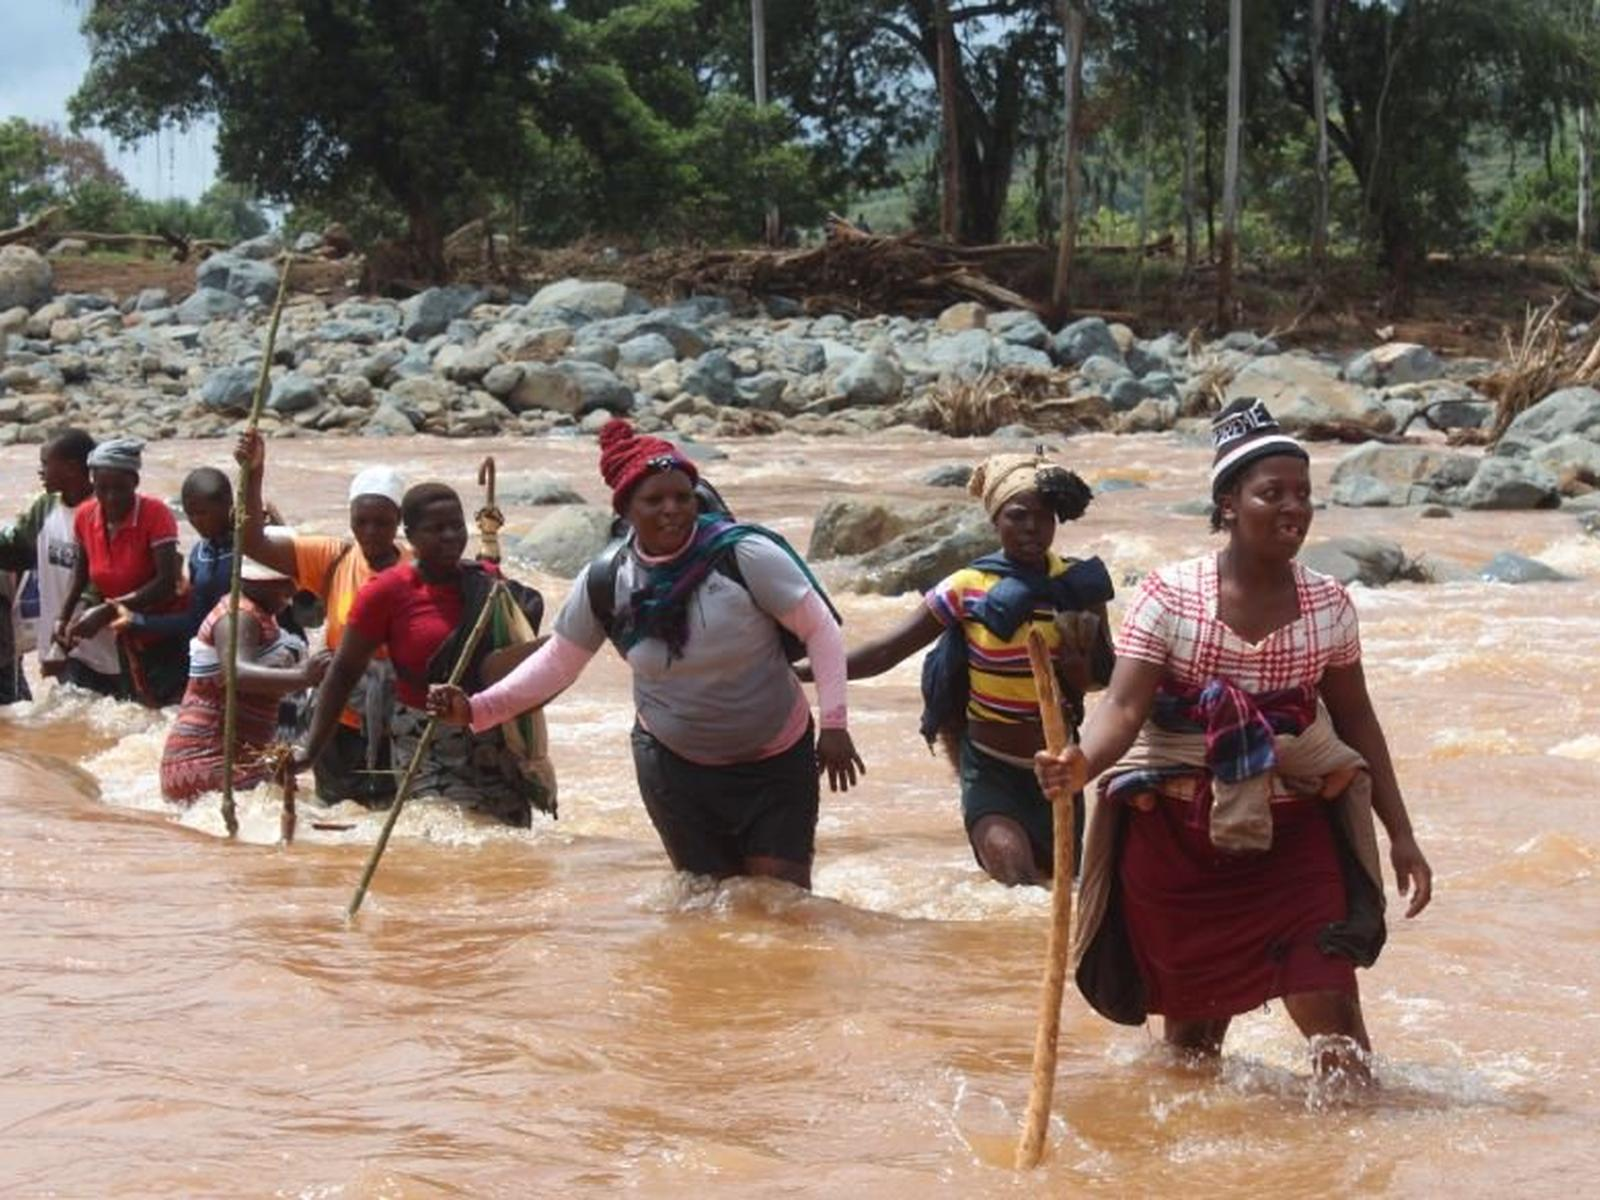 Emergency aid for those affected by Cyclone Idai in